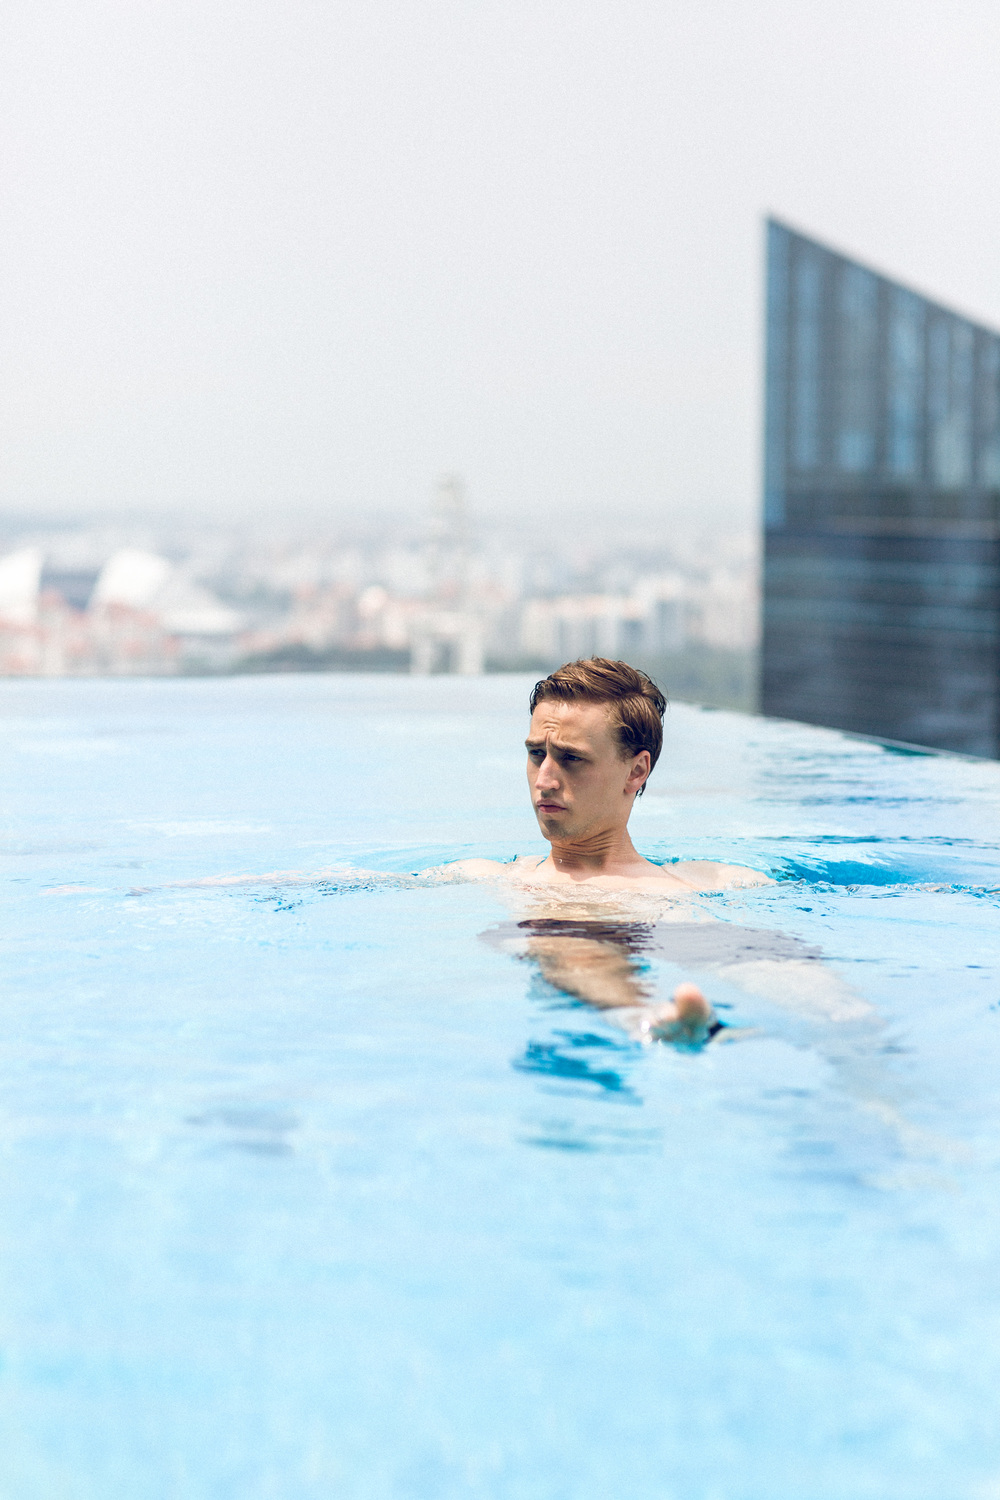 Moritz swimming in the infinity pool on the 35th floor overlooking Marina Bay.